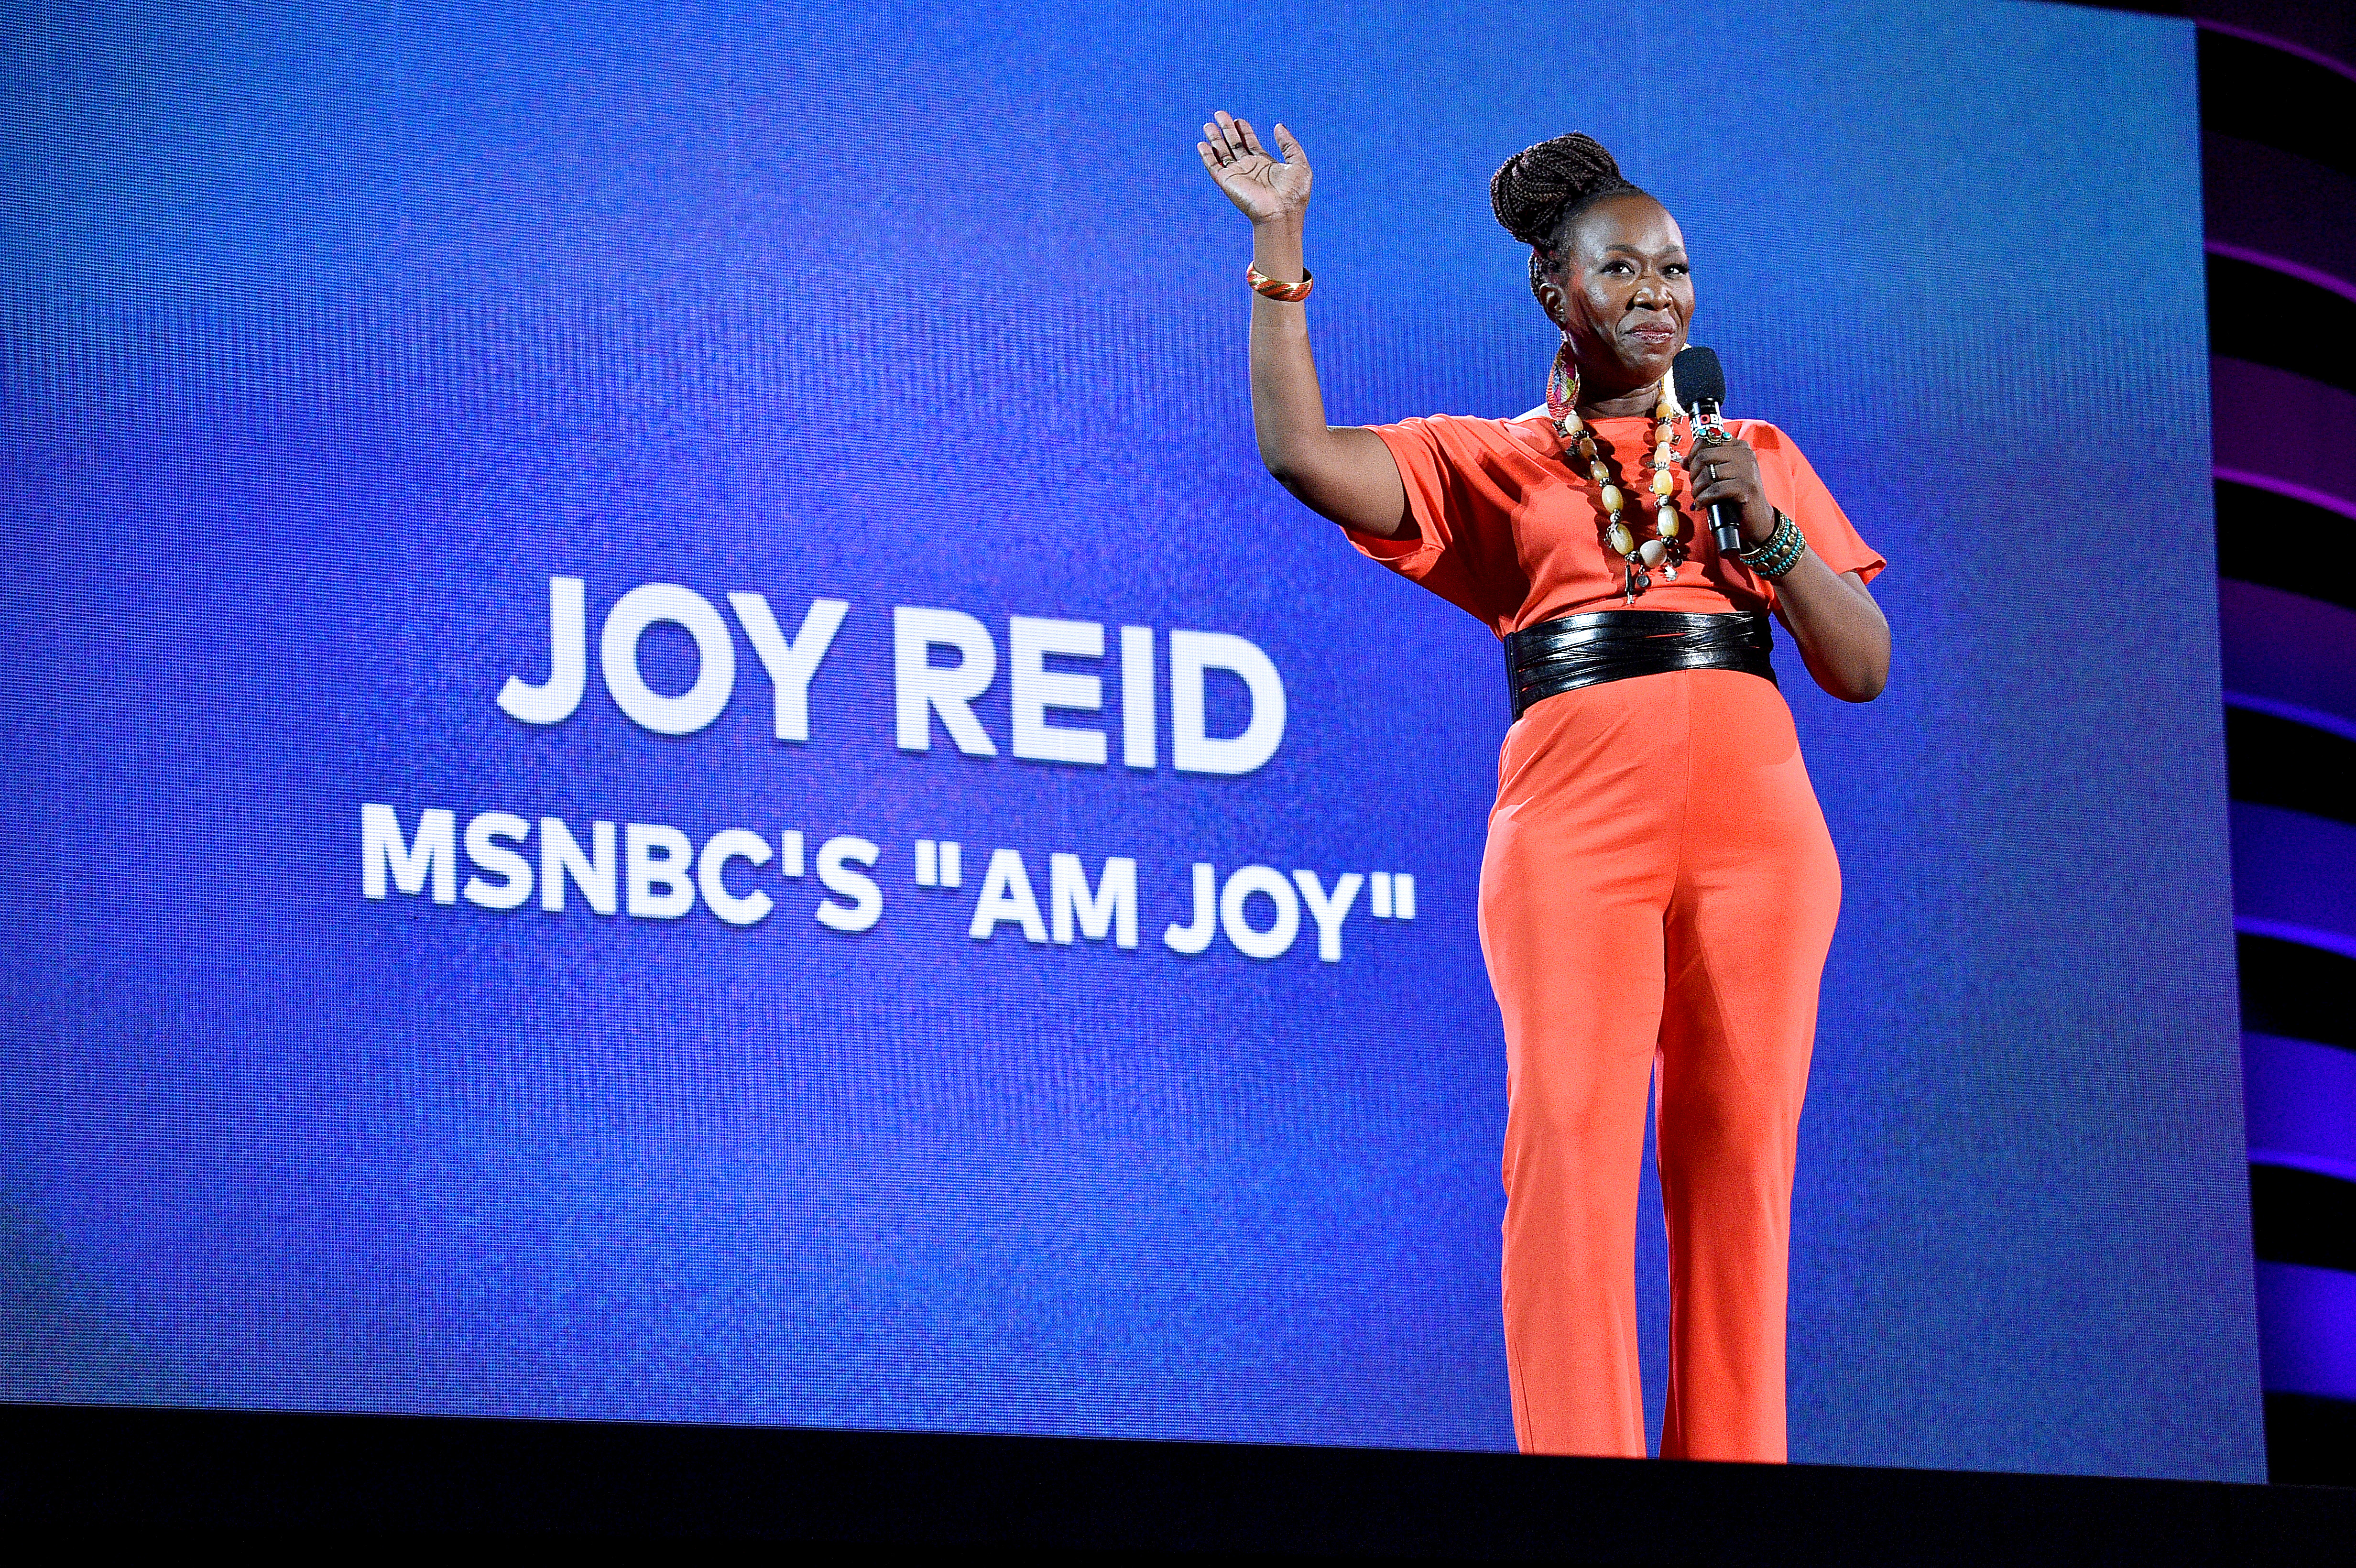 Joy Reid speaks onstage during the 2019 Global Citizen Festival: Power The Movement in Central Park on September 28, 2019 in New York City. (Theo Wargo/Getty Images for Global Citizen)